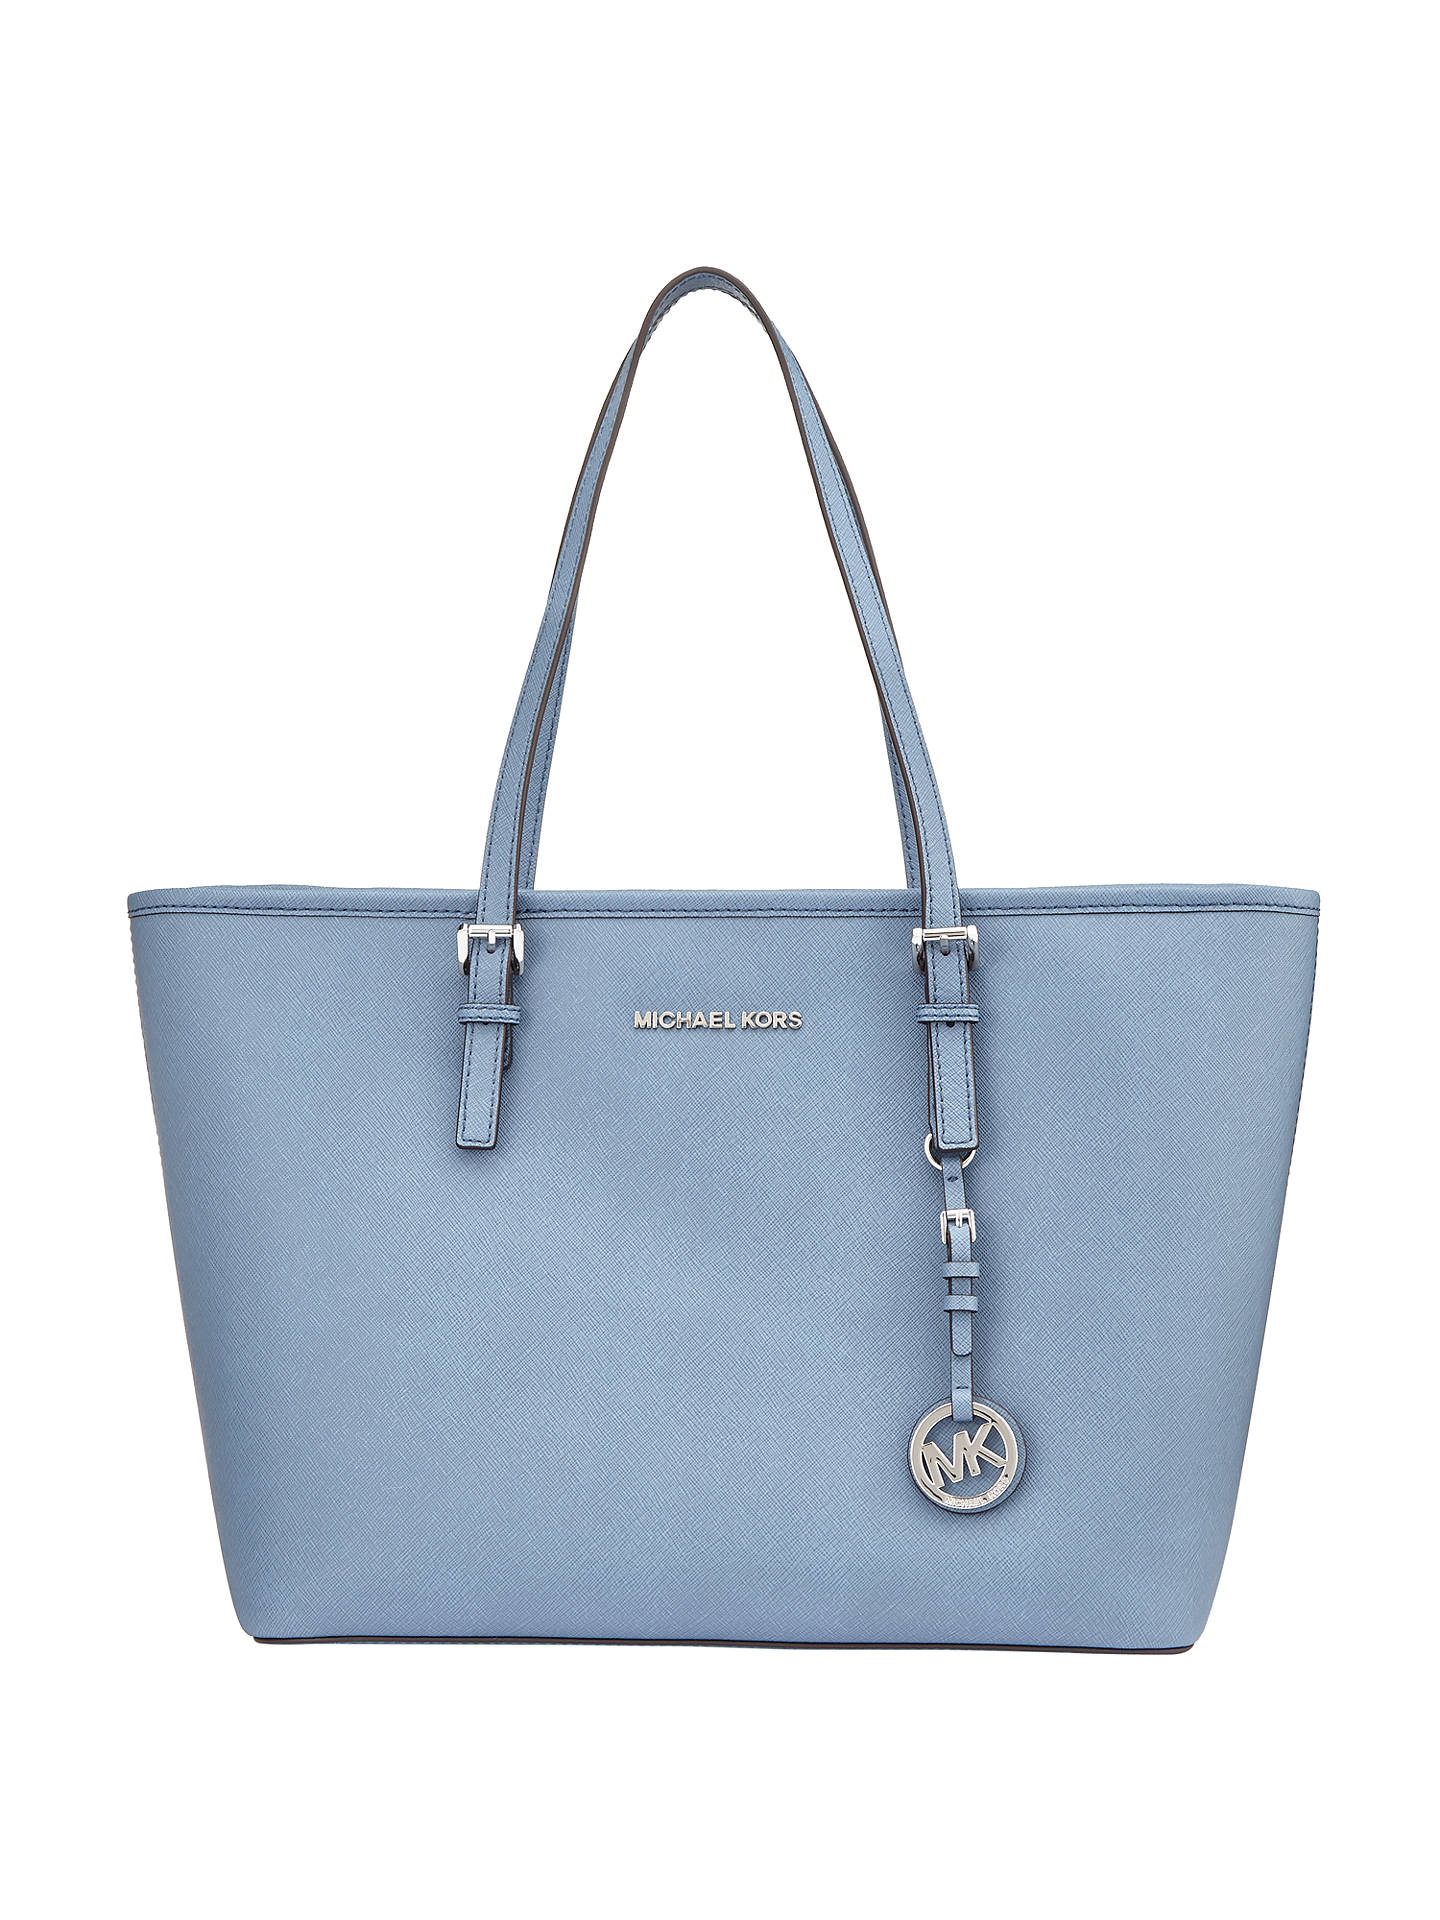 d5efae83fb584c Buy MICHAEL Michael Kors Jet Set Travel Top Zip Leather Tote Bag, Denim  Online at ...